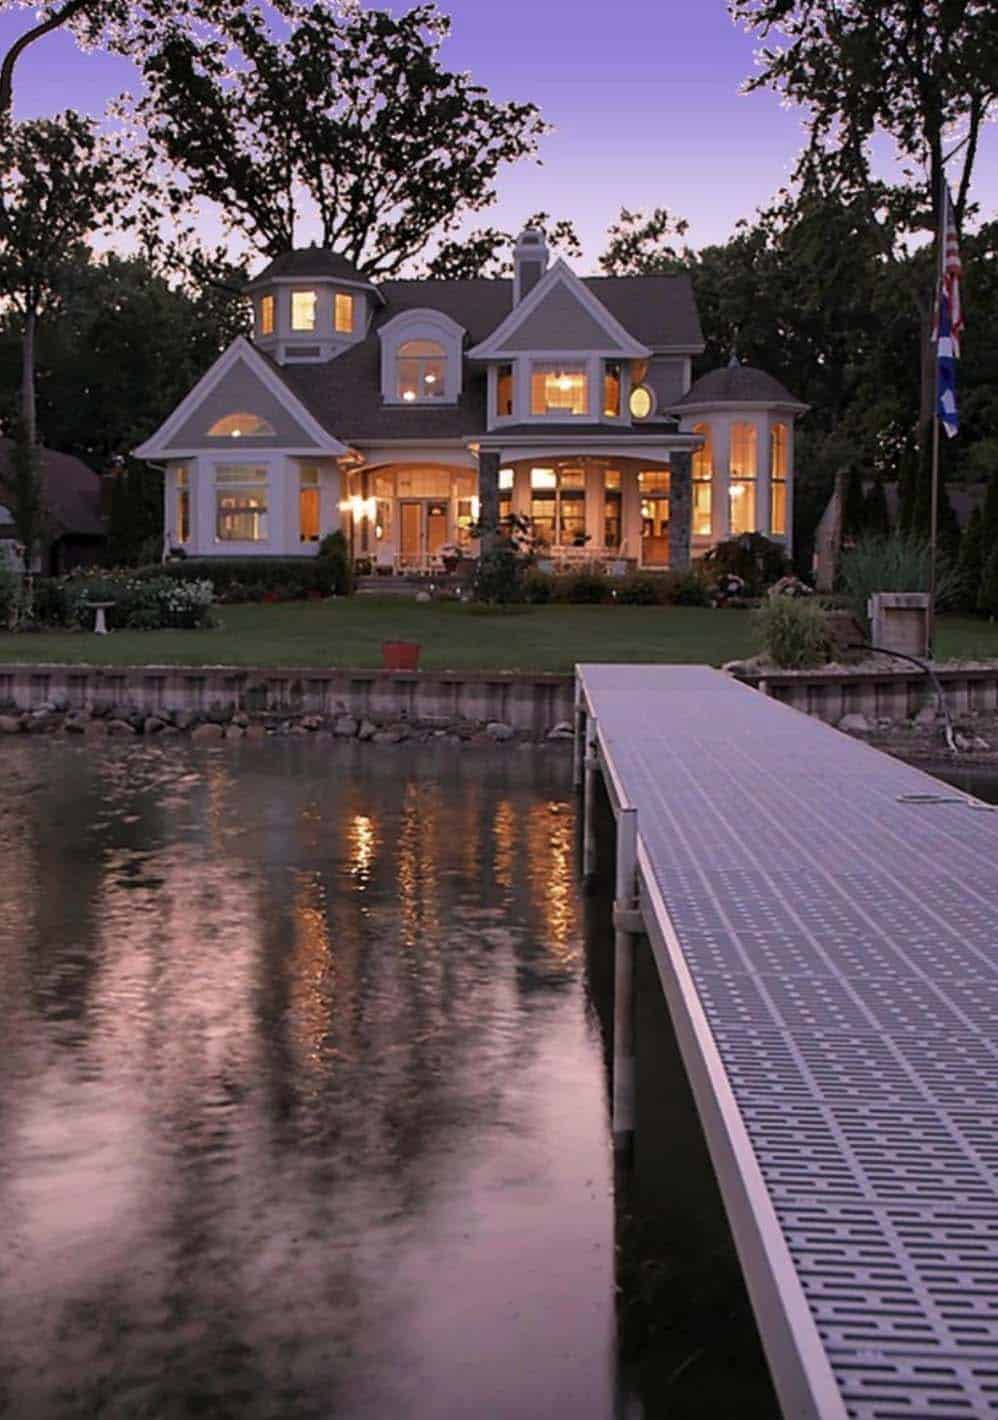 A cape cod inspired lake house designed for casual living in michigan for Lakefront home plans designs